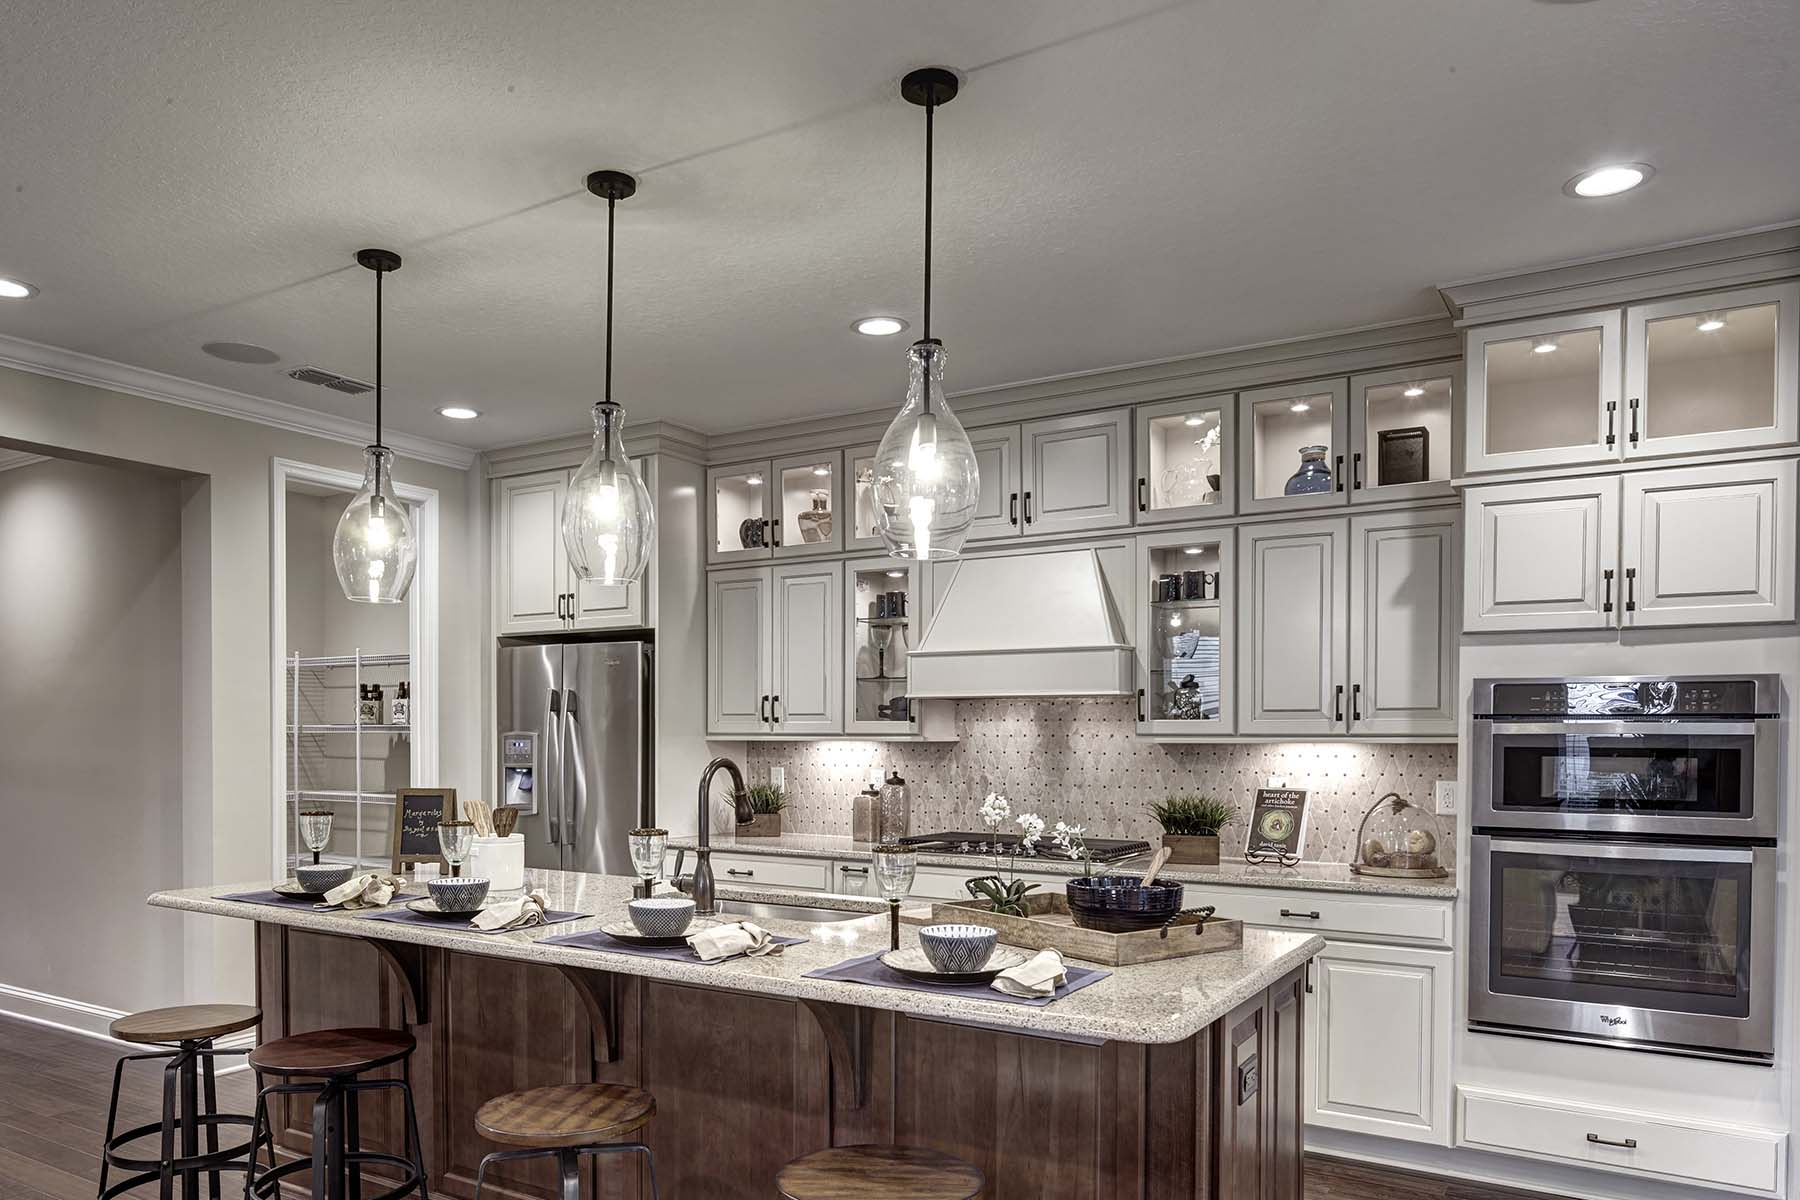 Beauclair Plan Kitchen at RiverTown - Arbors in St. Johns Florida by Mattamy Homes